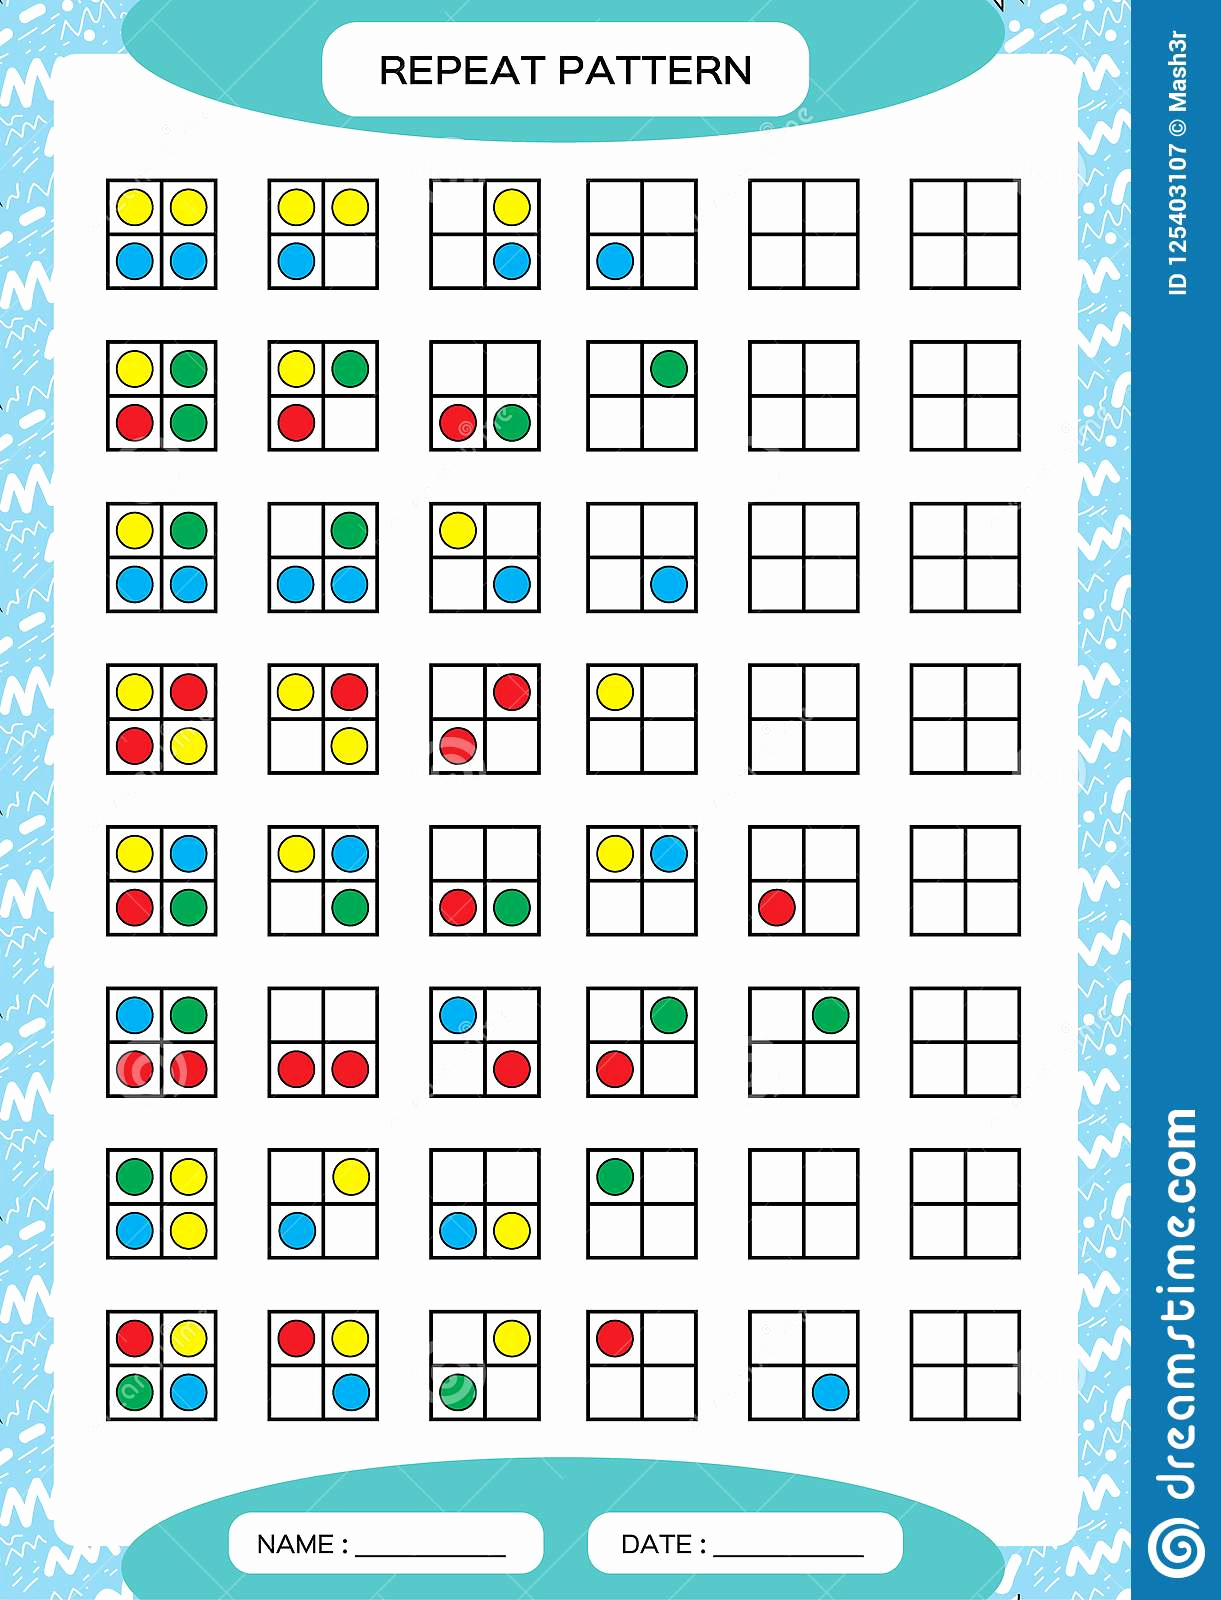 Repeated Pattern Worksheets Fresh Repeat Pattern Square Grid with Colorfull Circles